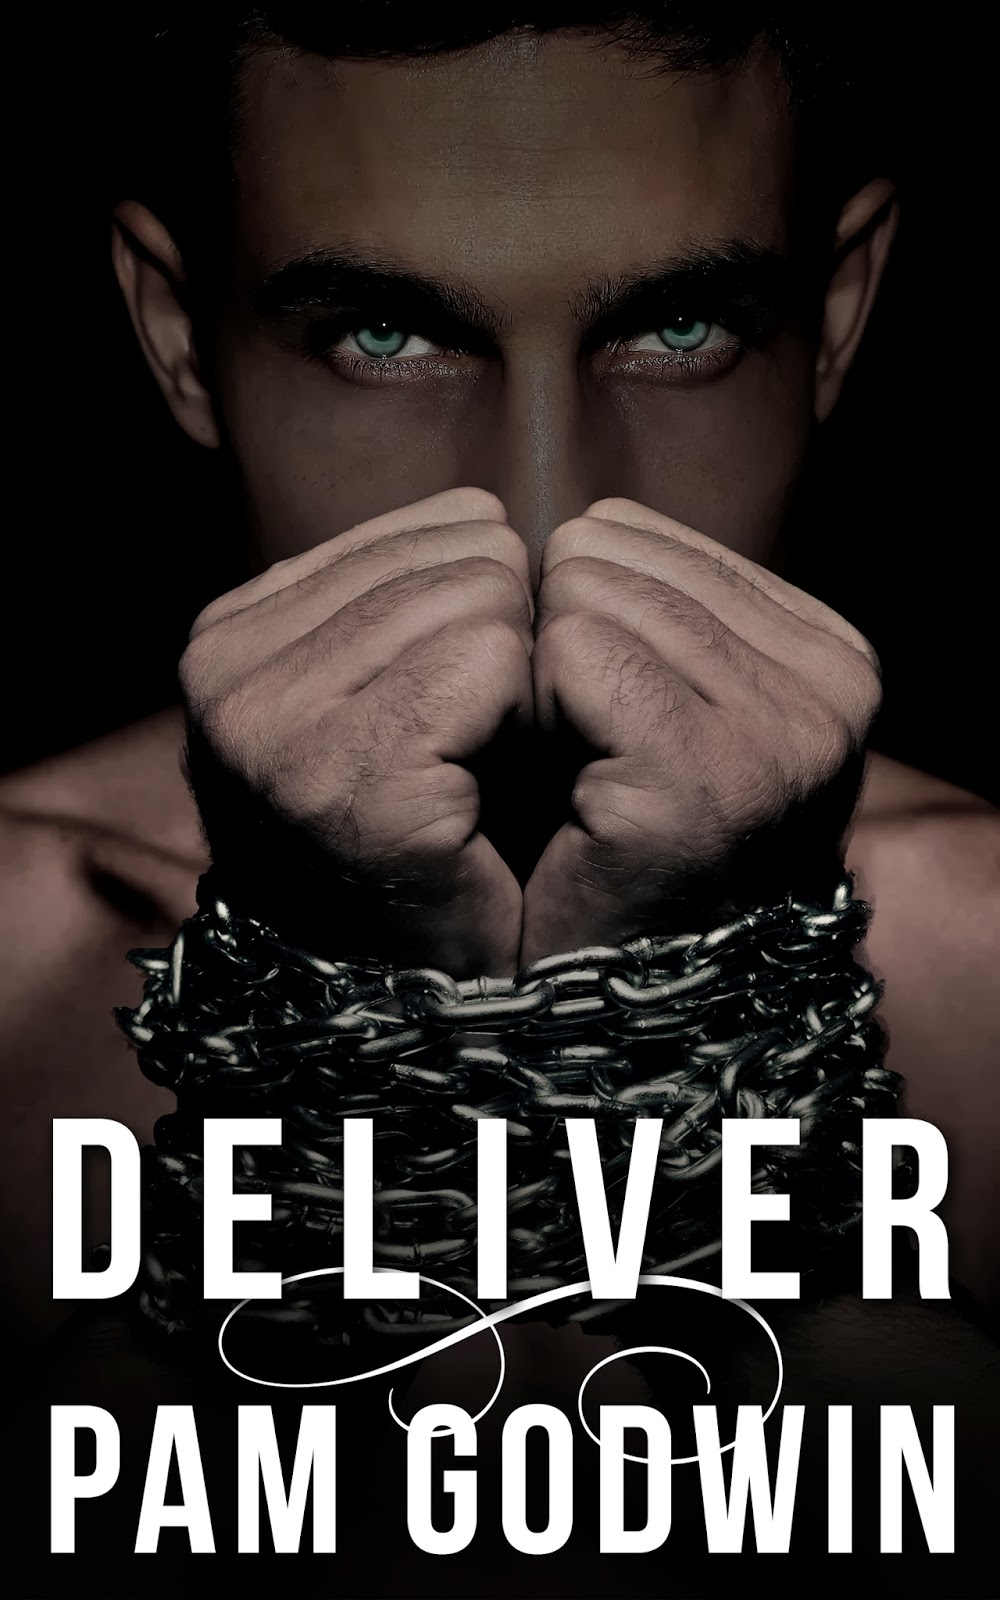 Deliver by Pam Goodwin